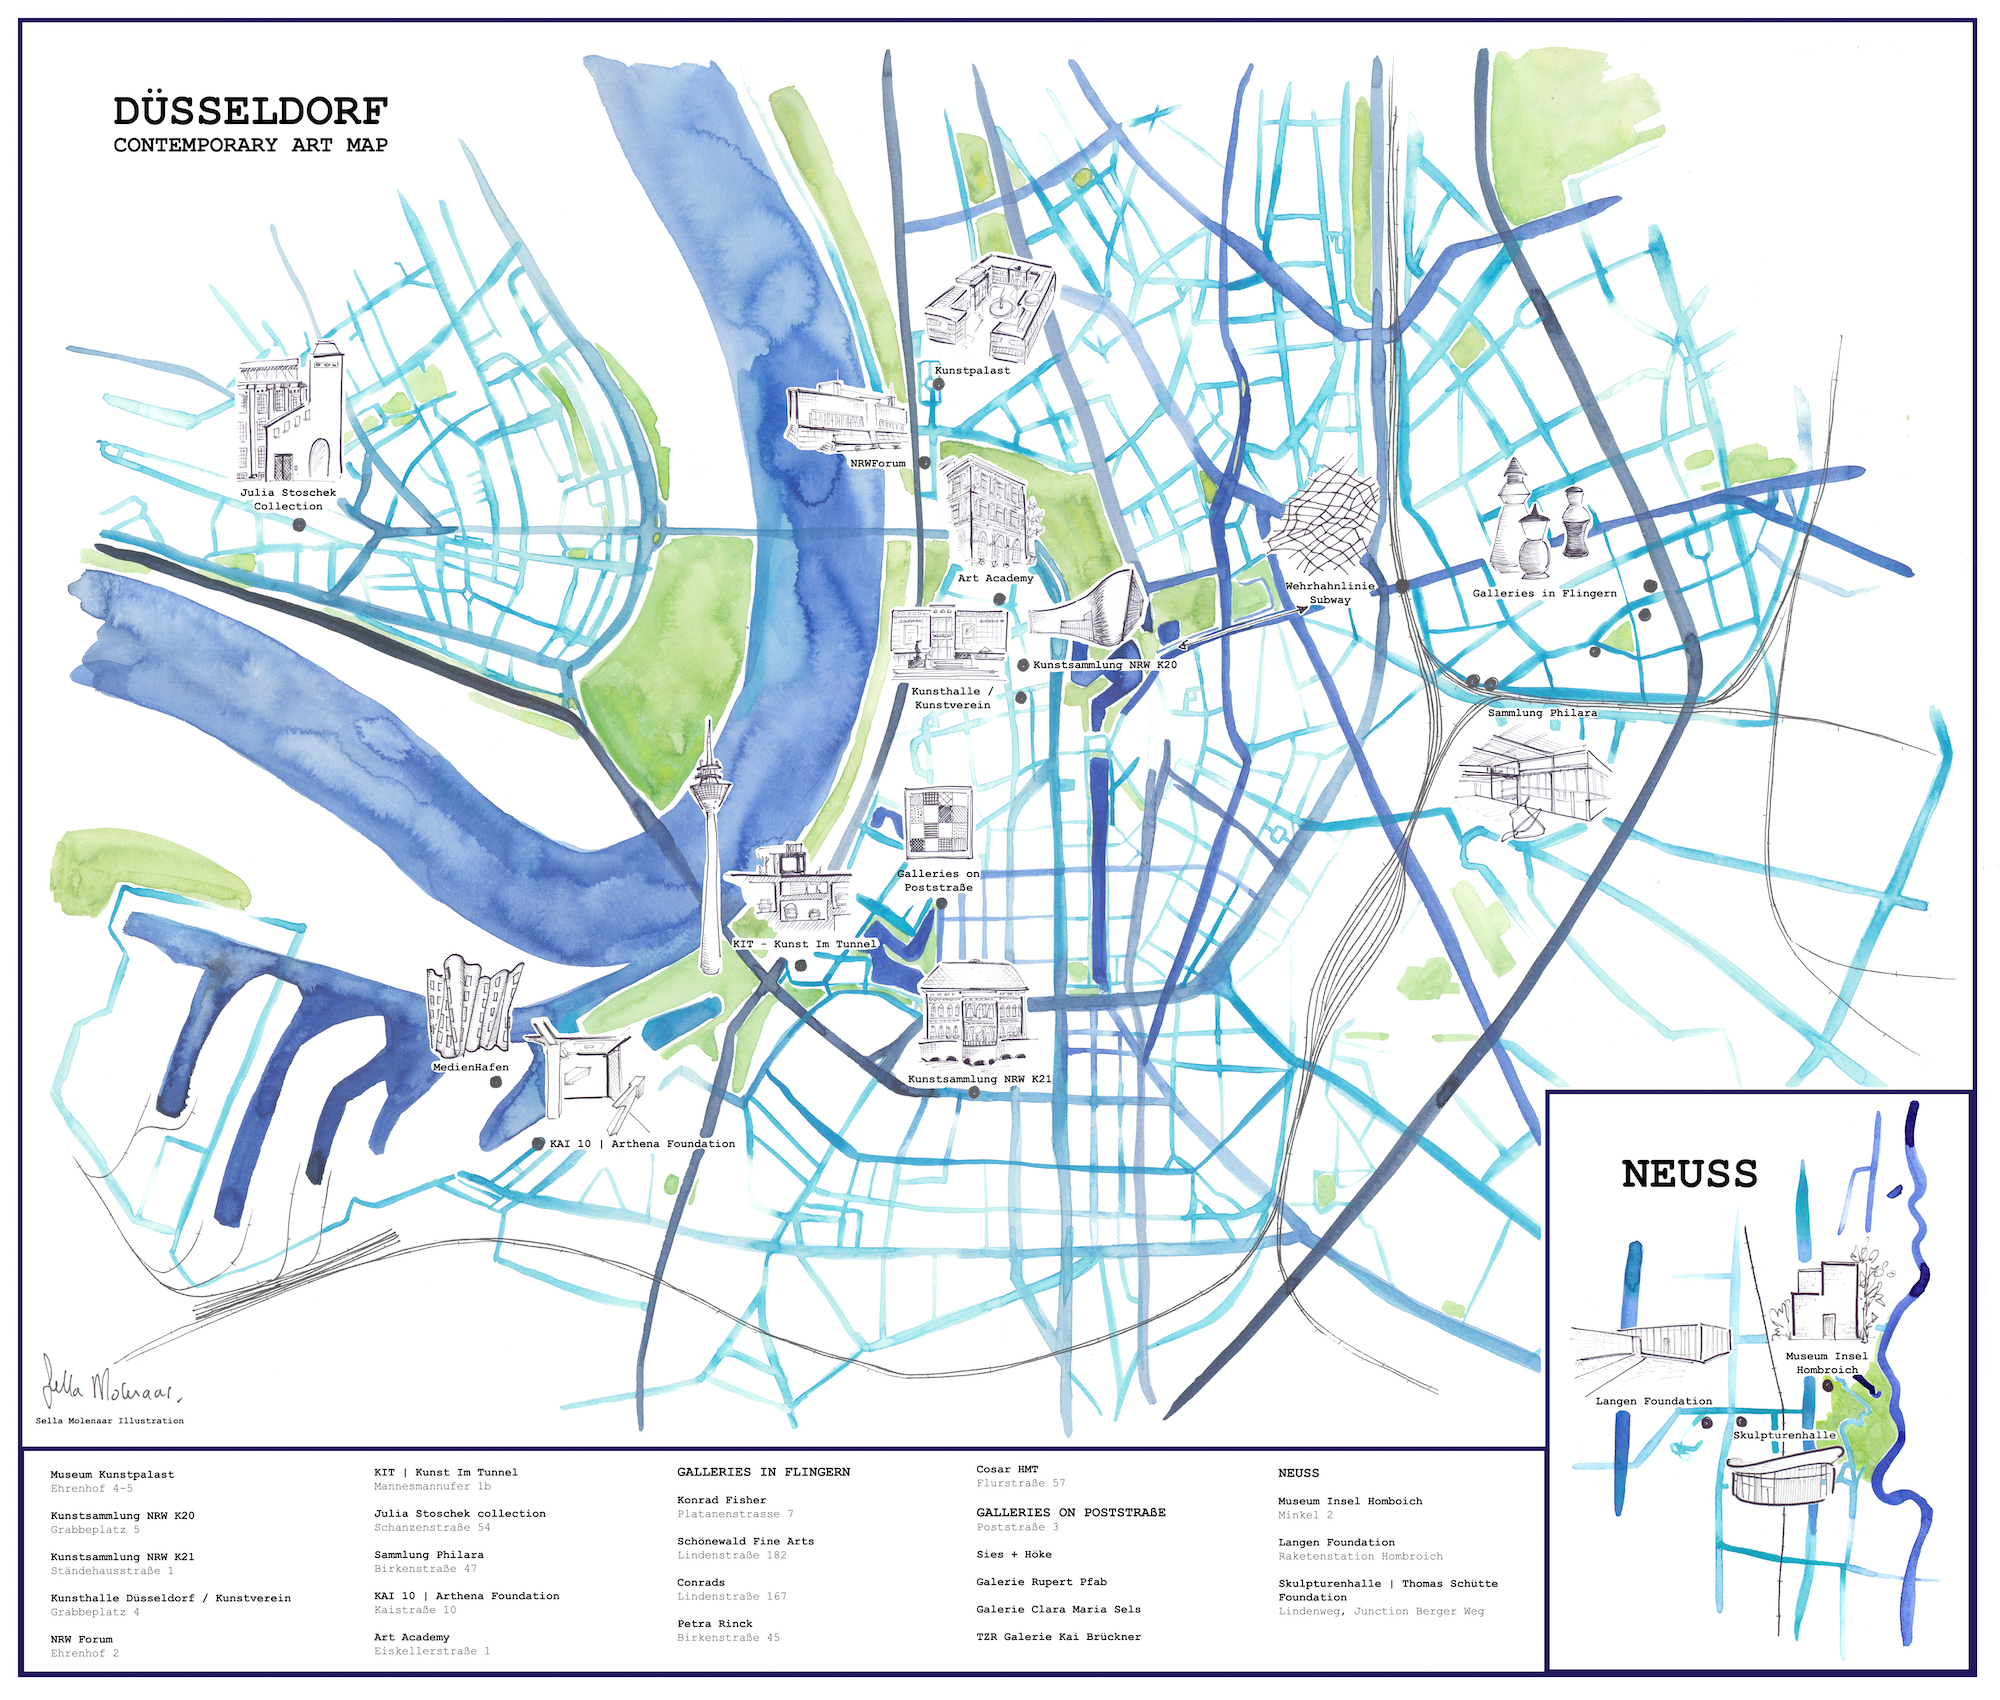 dusseldorf-contemporary-art-map-02-web